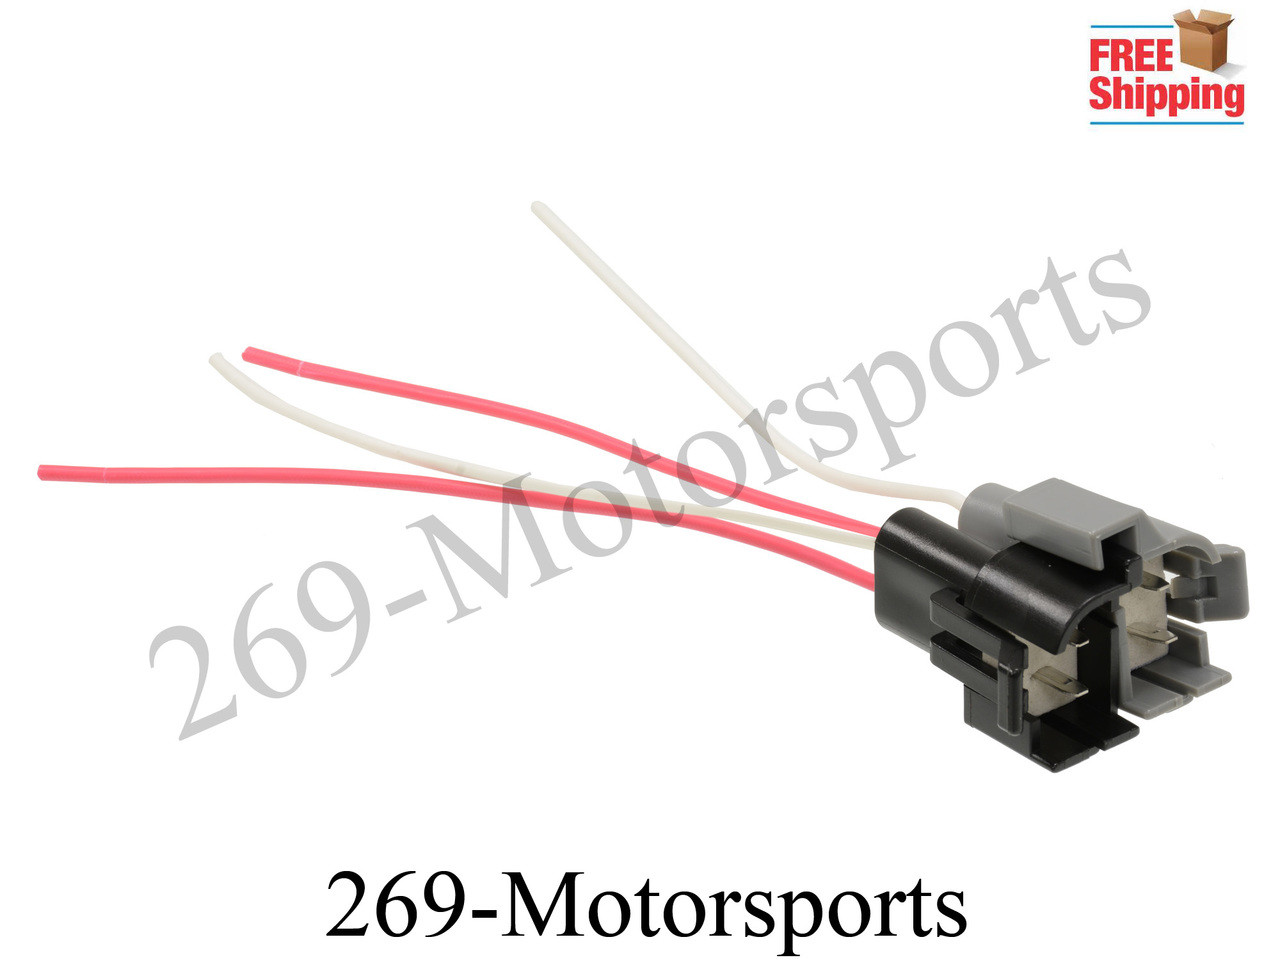 Gm Ignition Coil Wiring Harness Trusted Diagrams Diagram Wire Tpi Tbi Fits Lt1 Camaro Firebird Connector Rh 269motorsports Com Hei Module